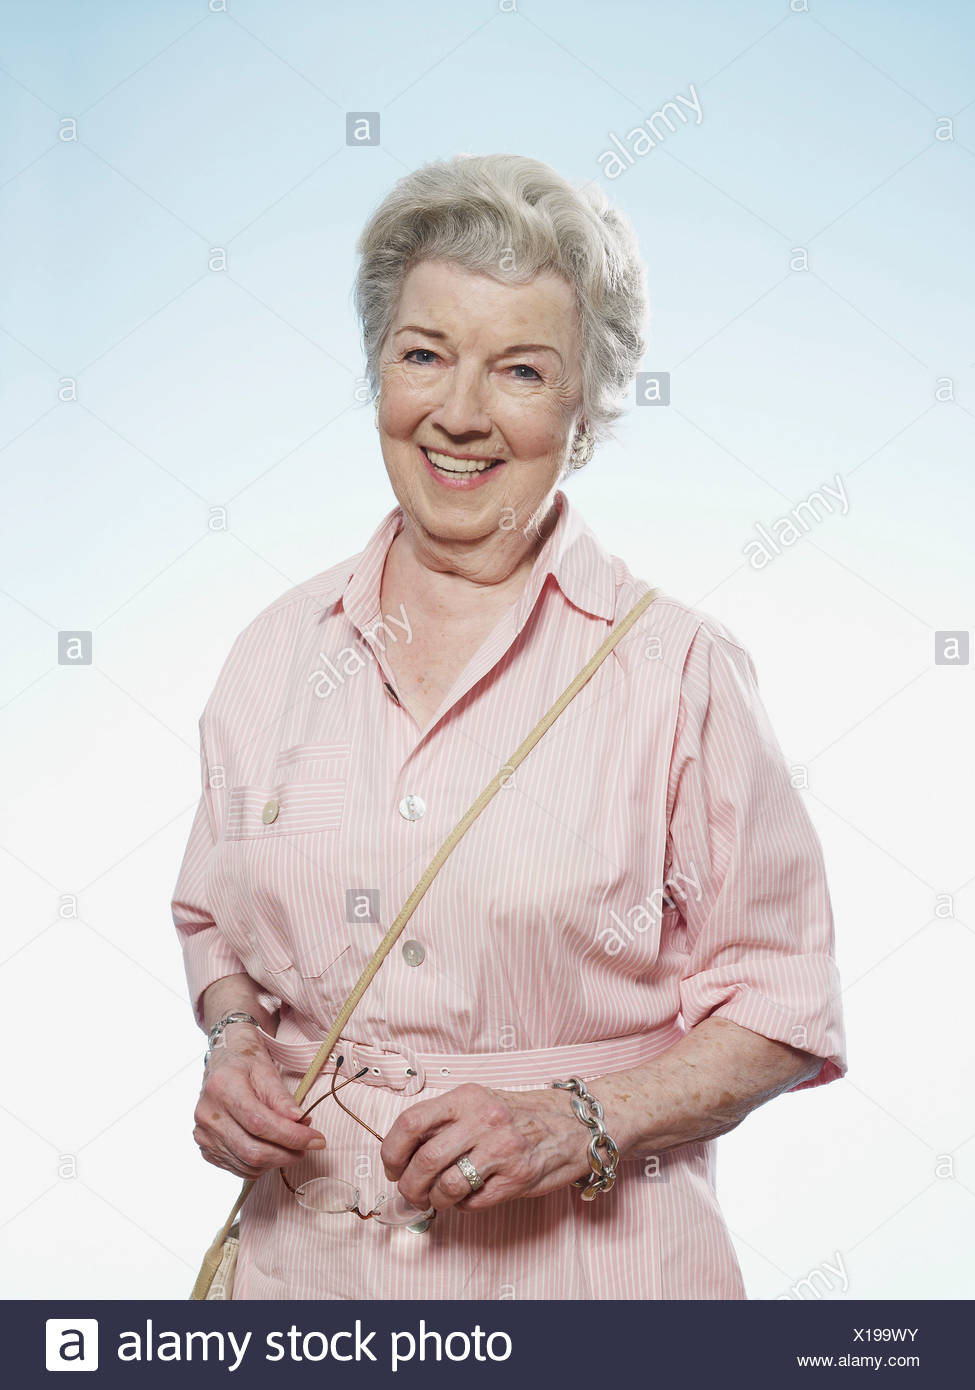 Profile of smiling senior woman holding her glasses - Stock Image